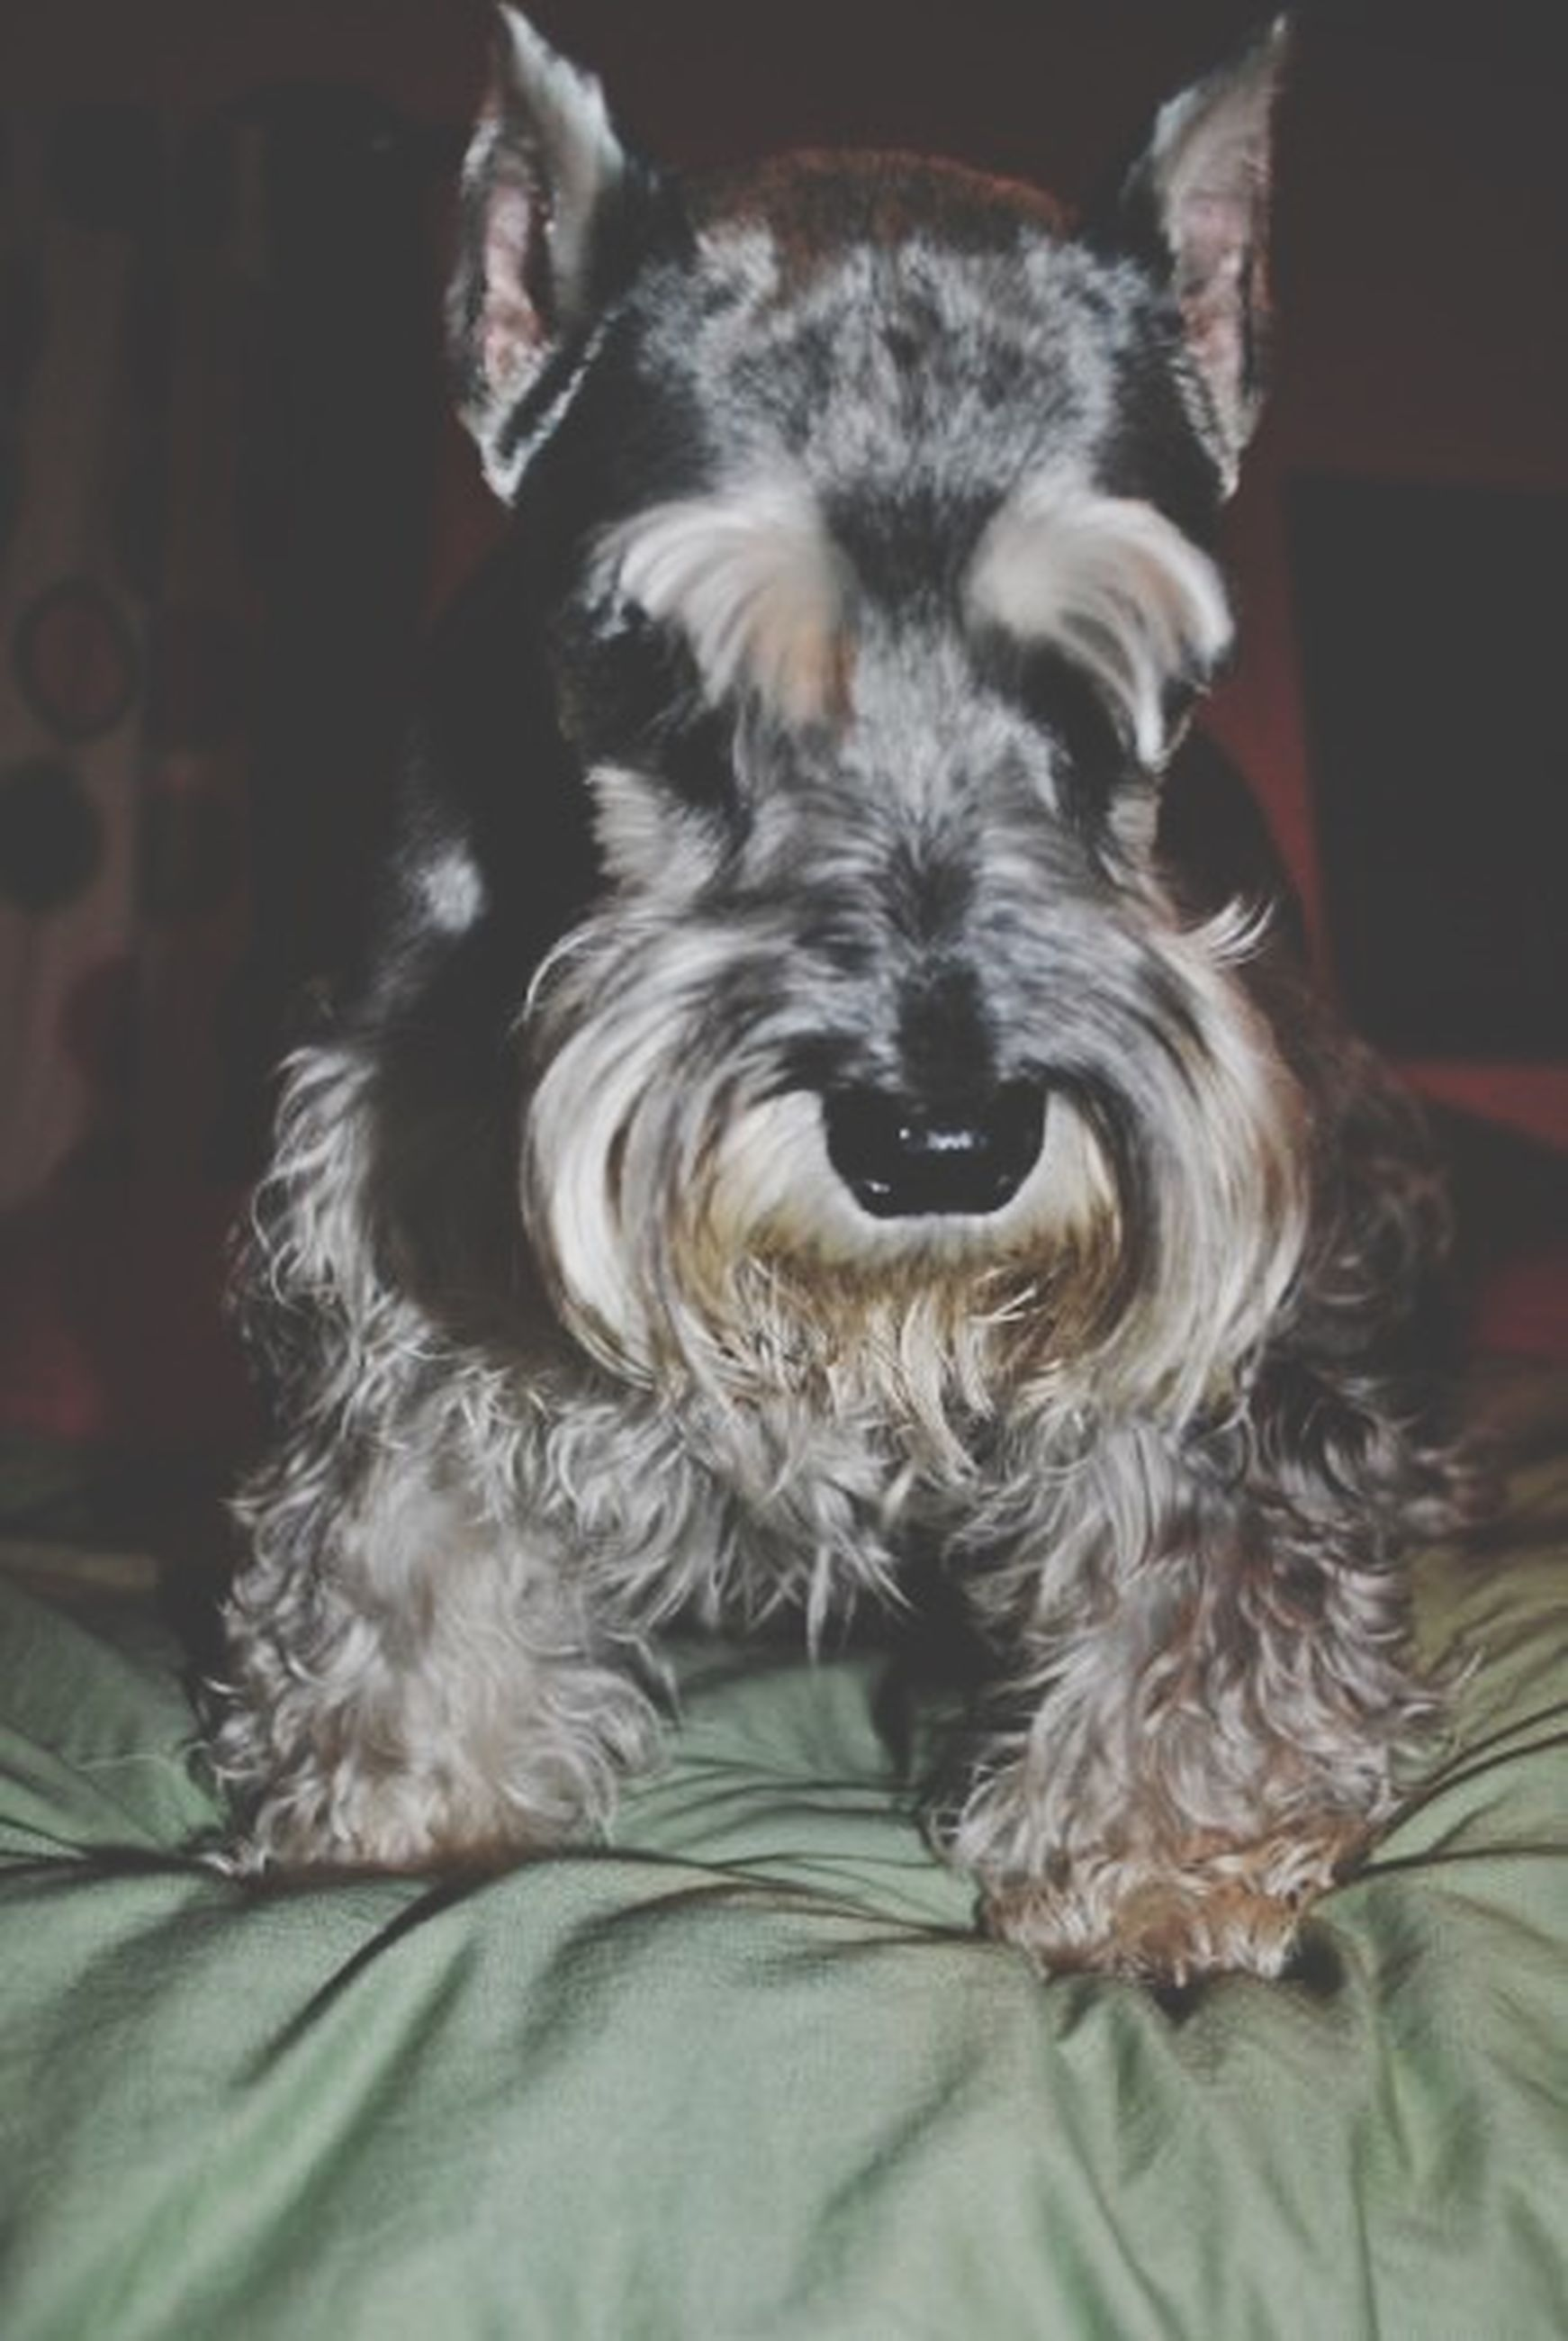 pets, domestic animals, animal themes, one animal, mammal, dog, indoors, relaxation, home interior, close-up, animal hair, resting, lying down, bed, portrait, looking at camera, animal head, sofa, home, no people